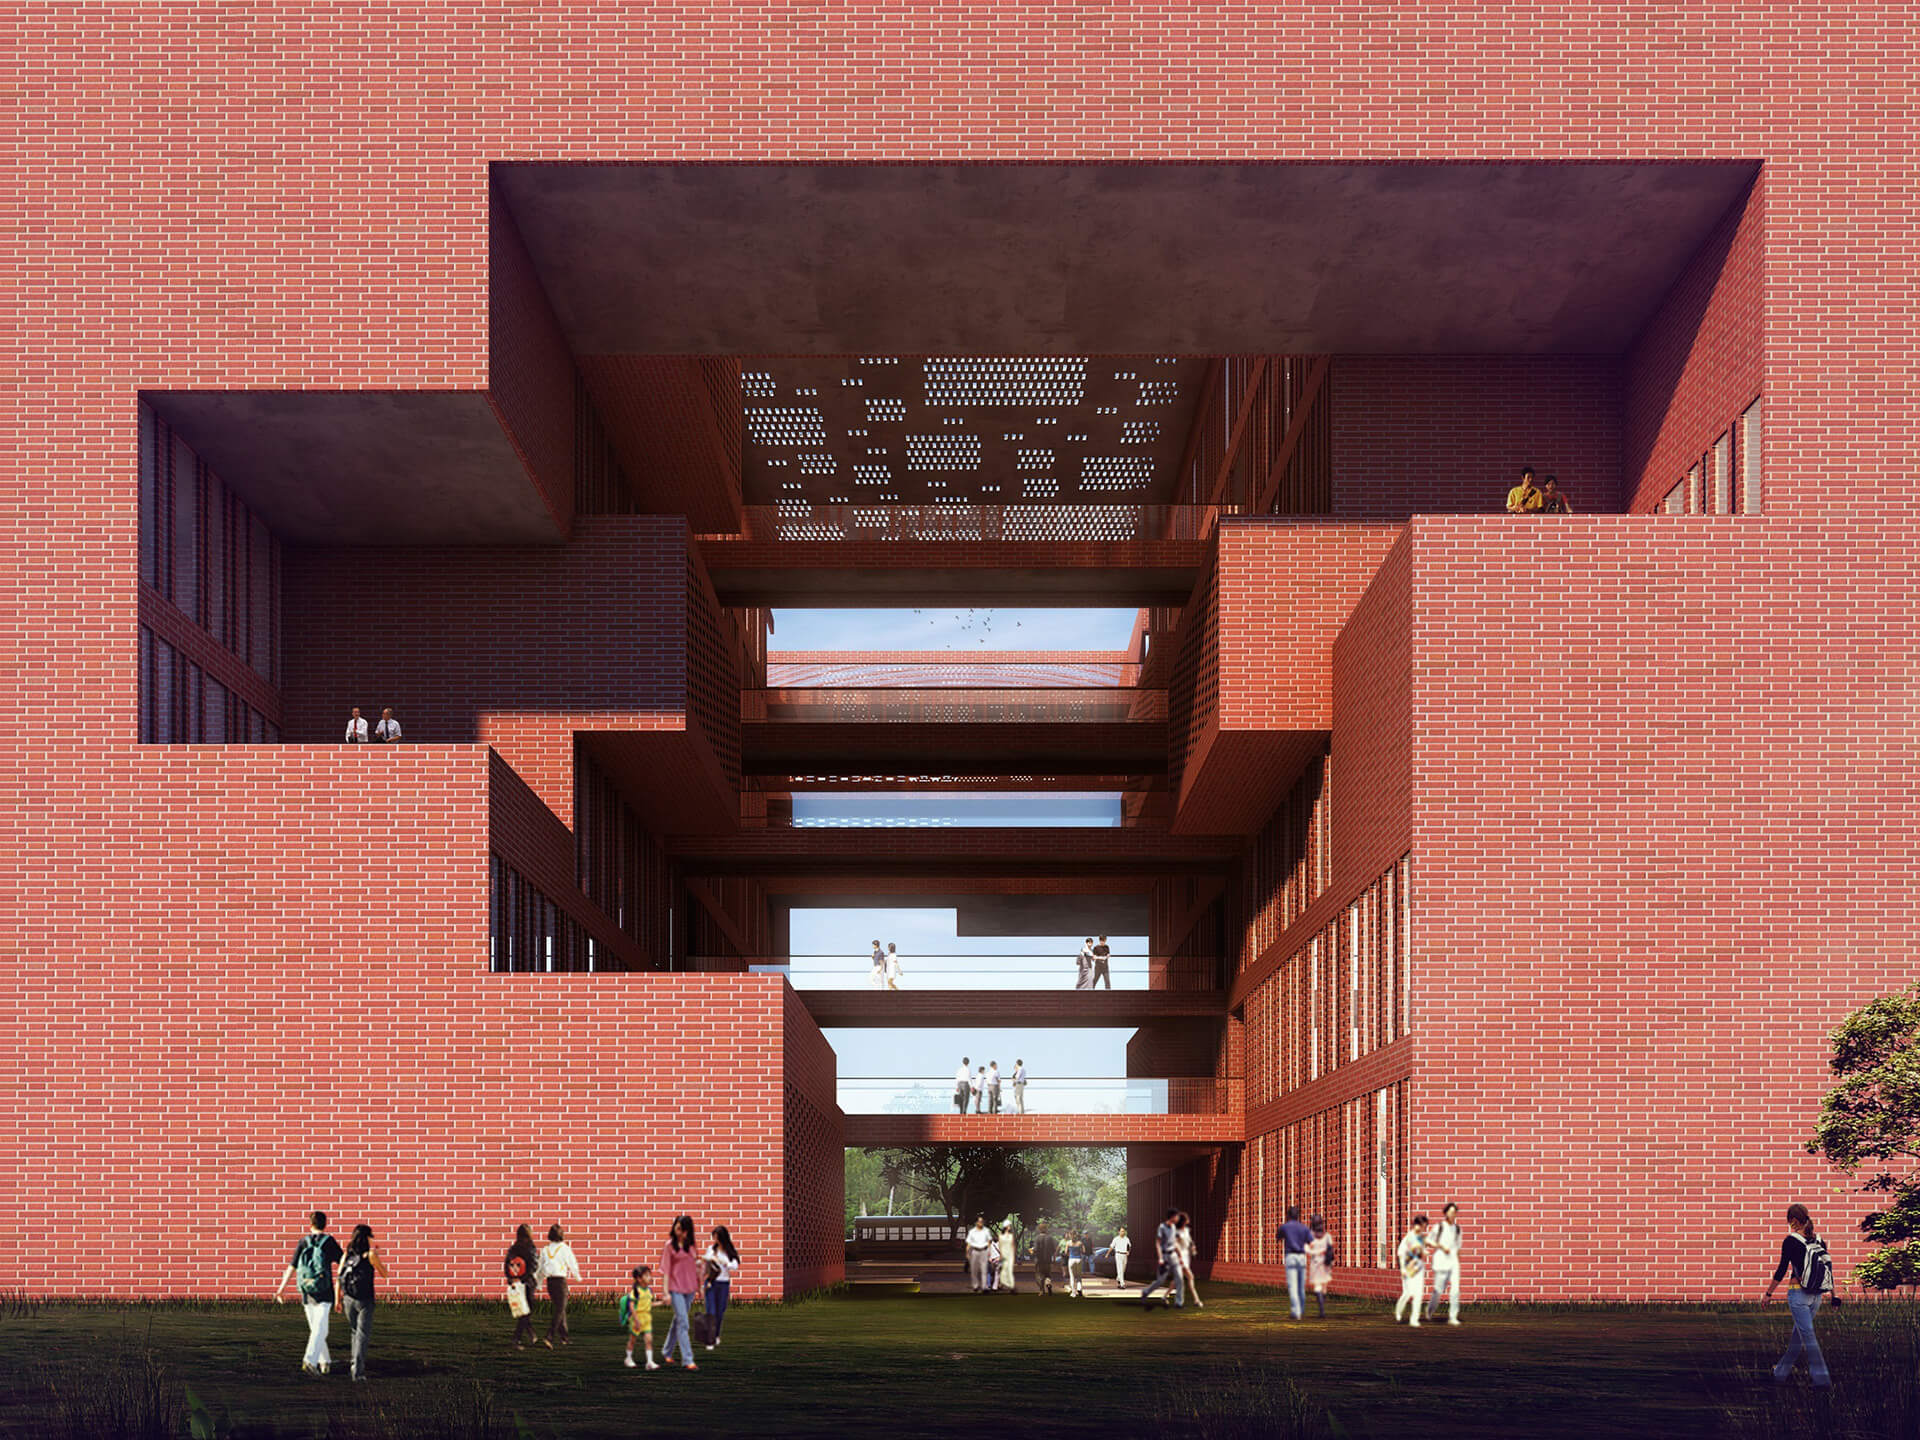 Cross ventilation in the internal courtyard of Learning Squares, Aurangabad | Learning Squares in Aurangabad by Sanjay Puri Architects | STIRworld